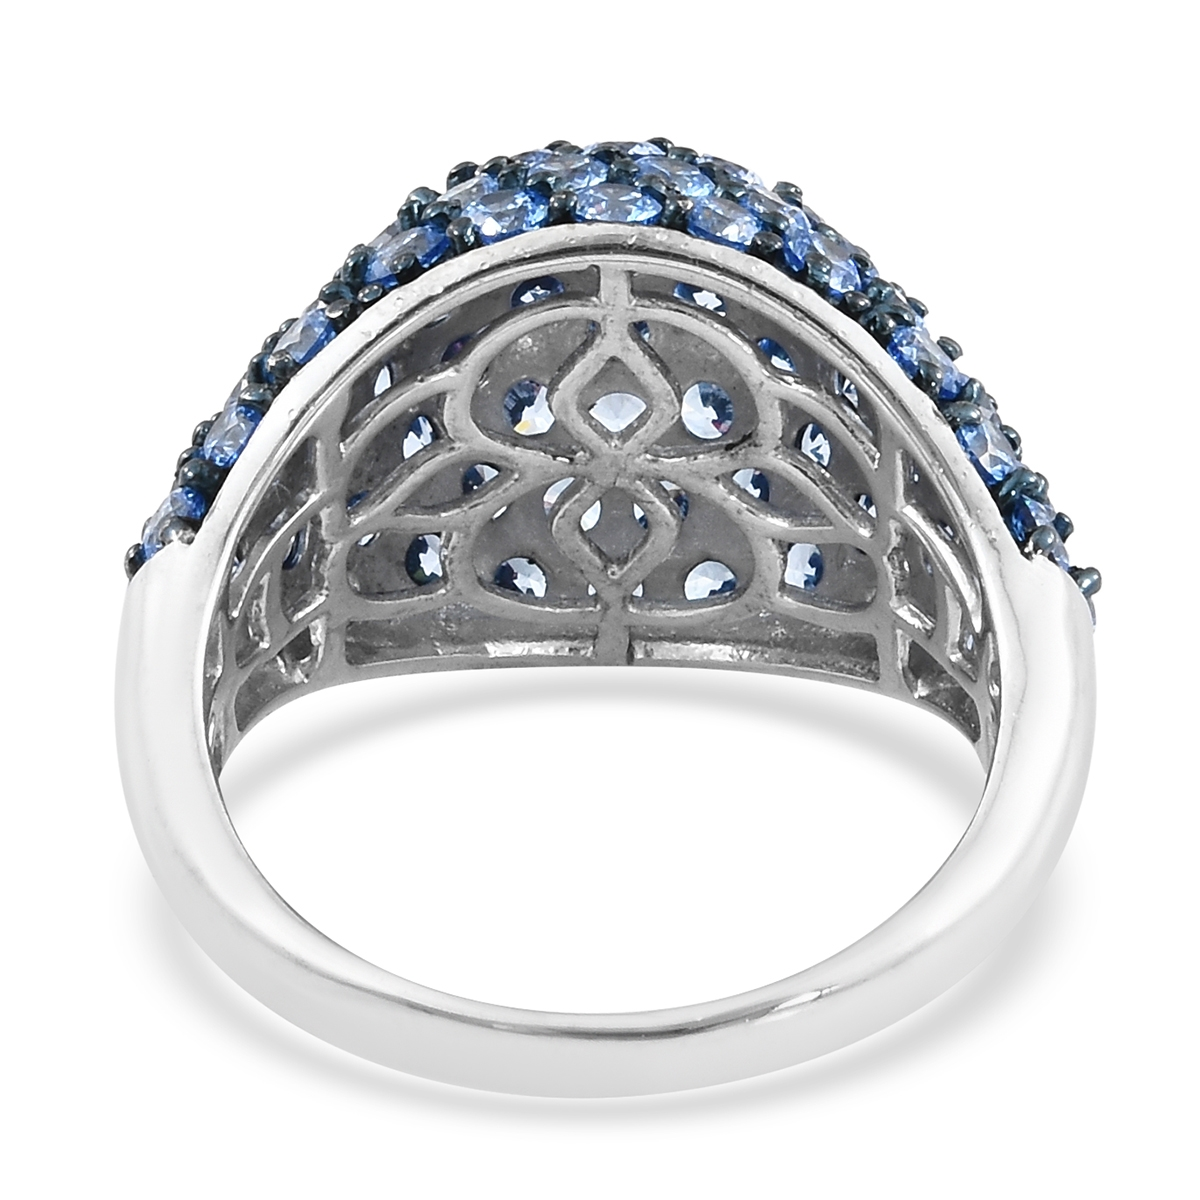 9d5a68e37 ... J Francis - Platinum Over Sterling Silver Cluster Ring Made with Arctic  Blue SWAROVSKI ZIRCONIA ...